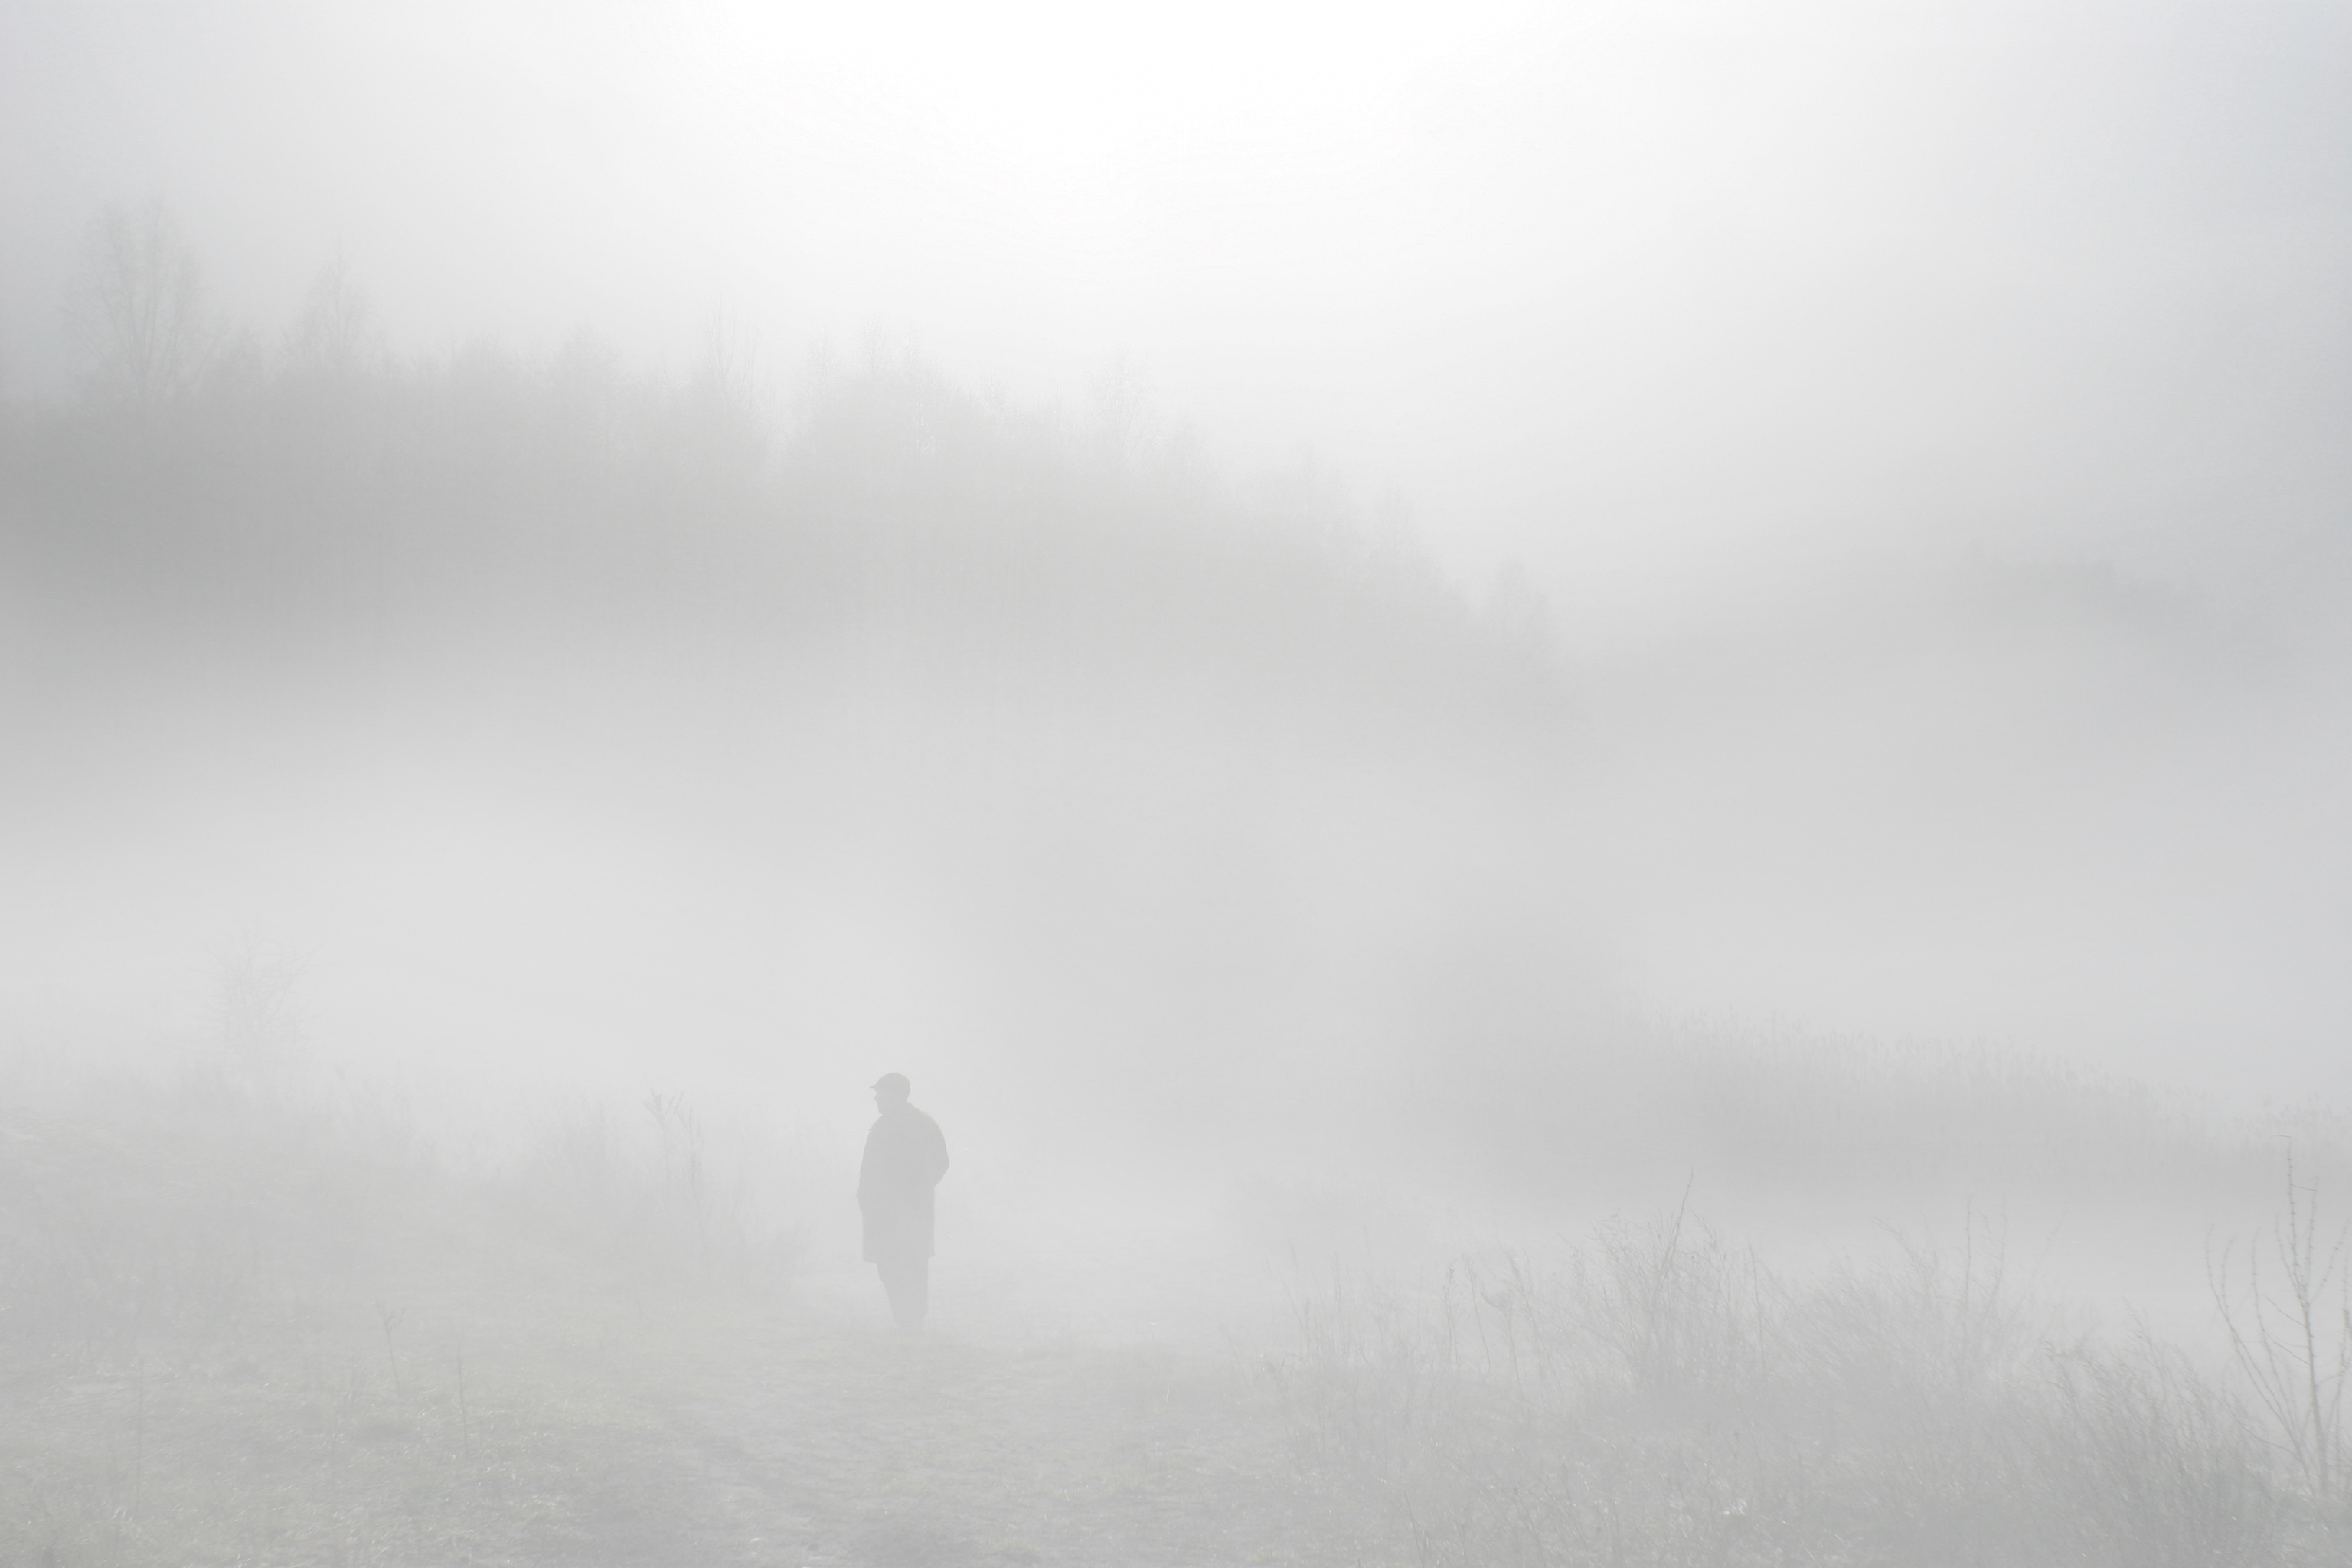 Walking in fog